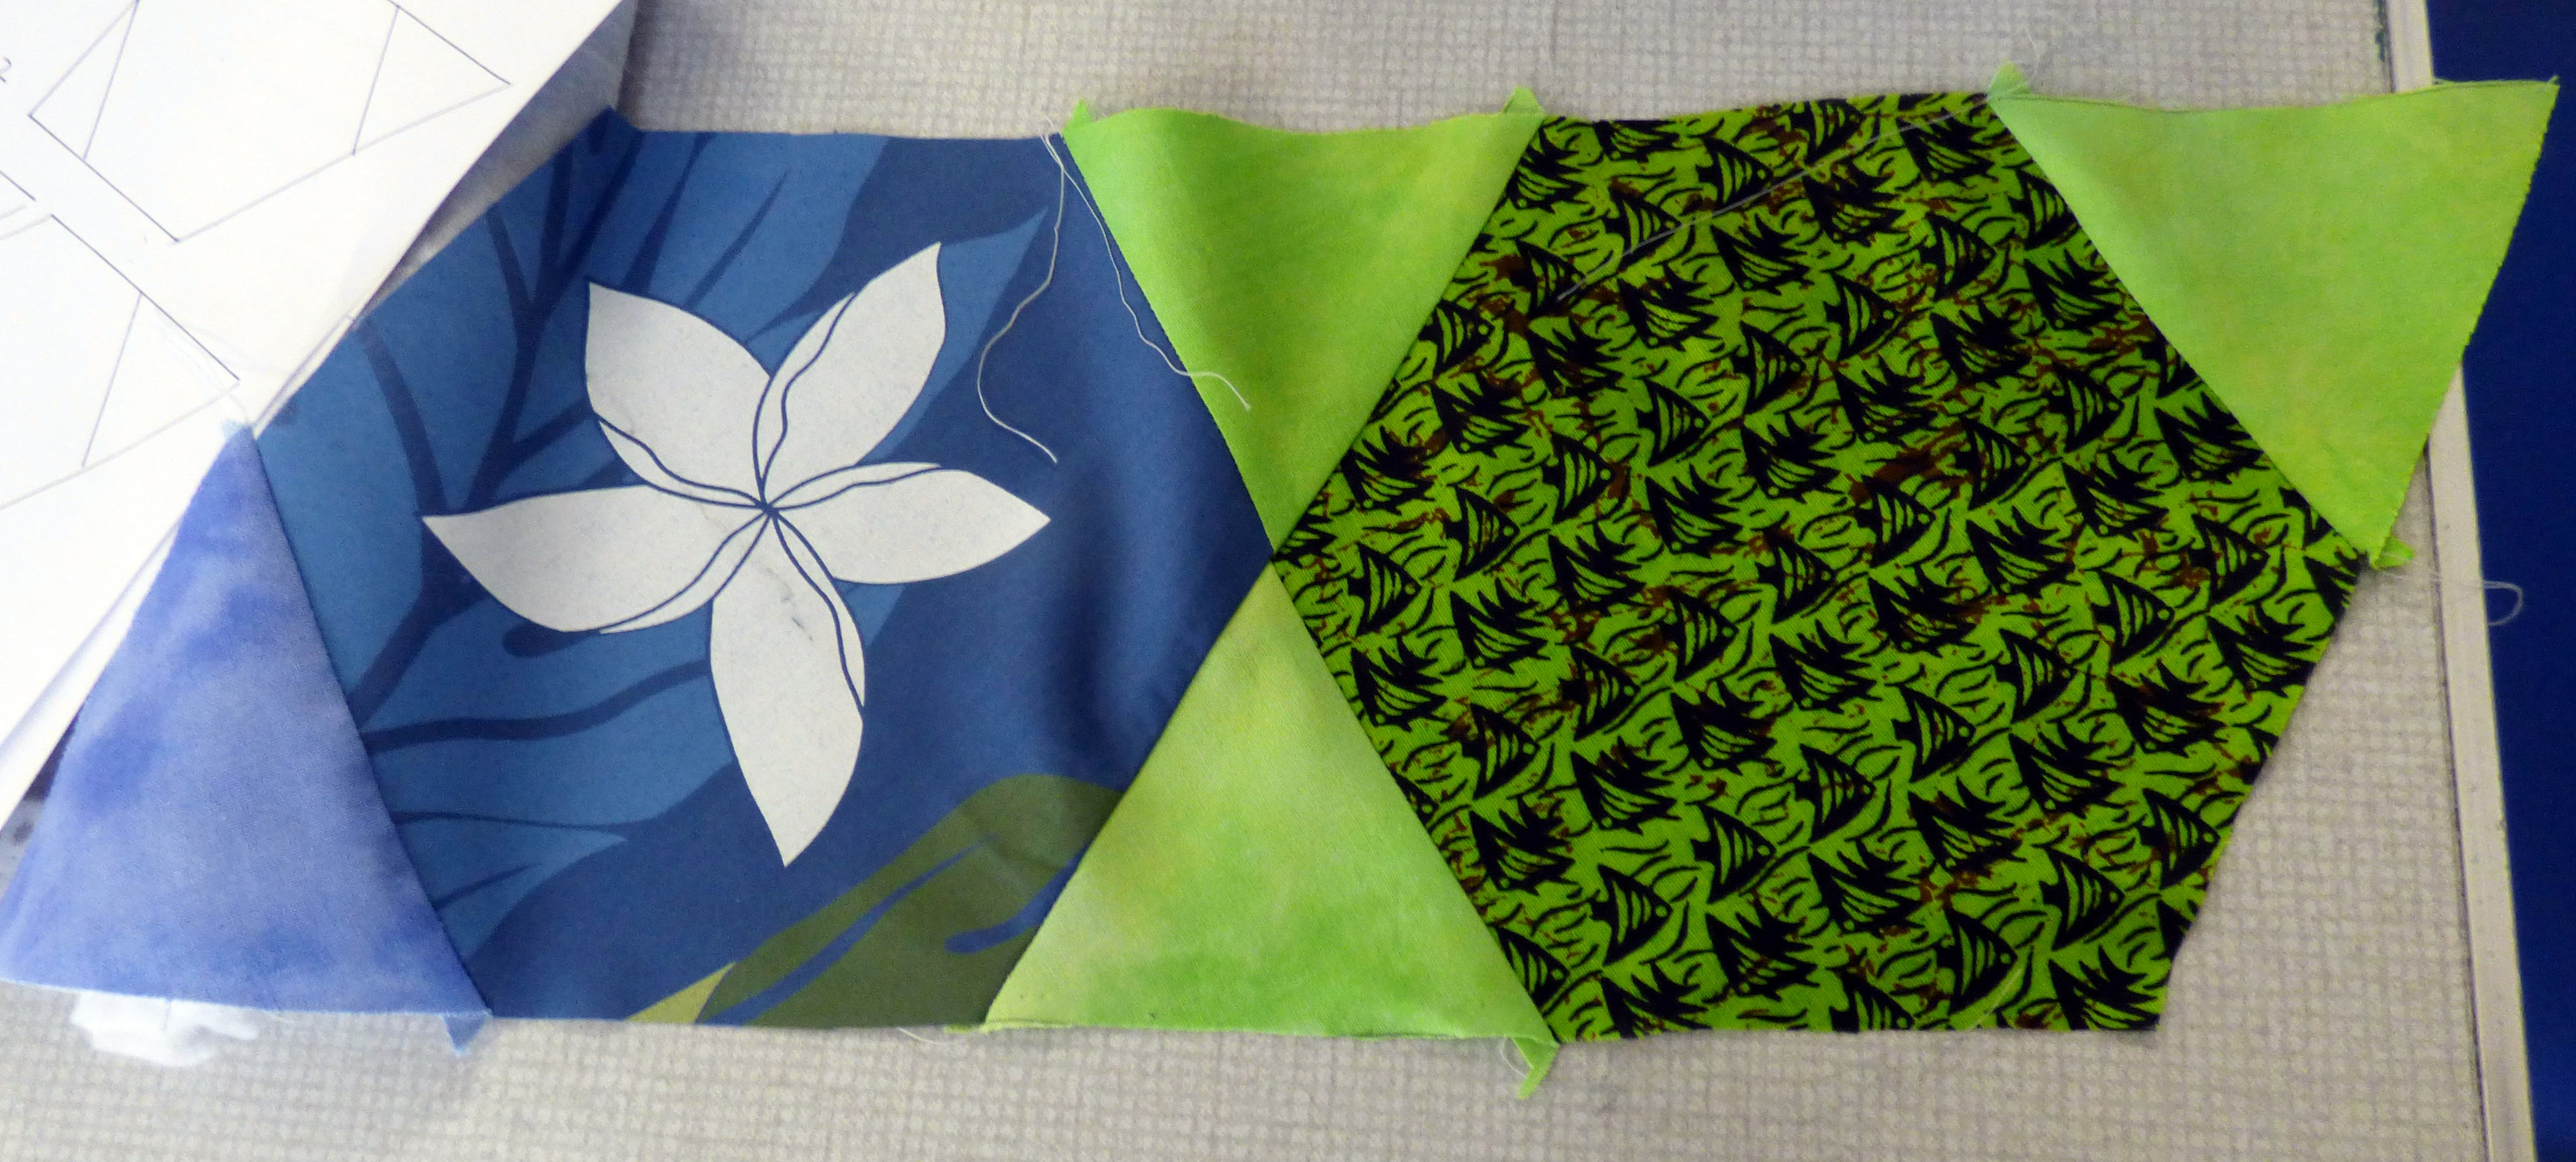 Margaret Smith gave us some lessons on quilt construction. This is how the KF quilt block should be sewn